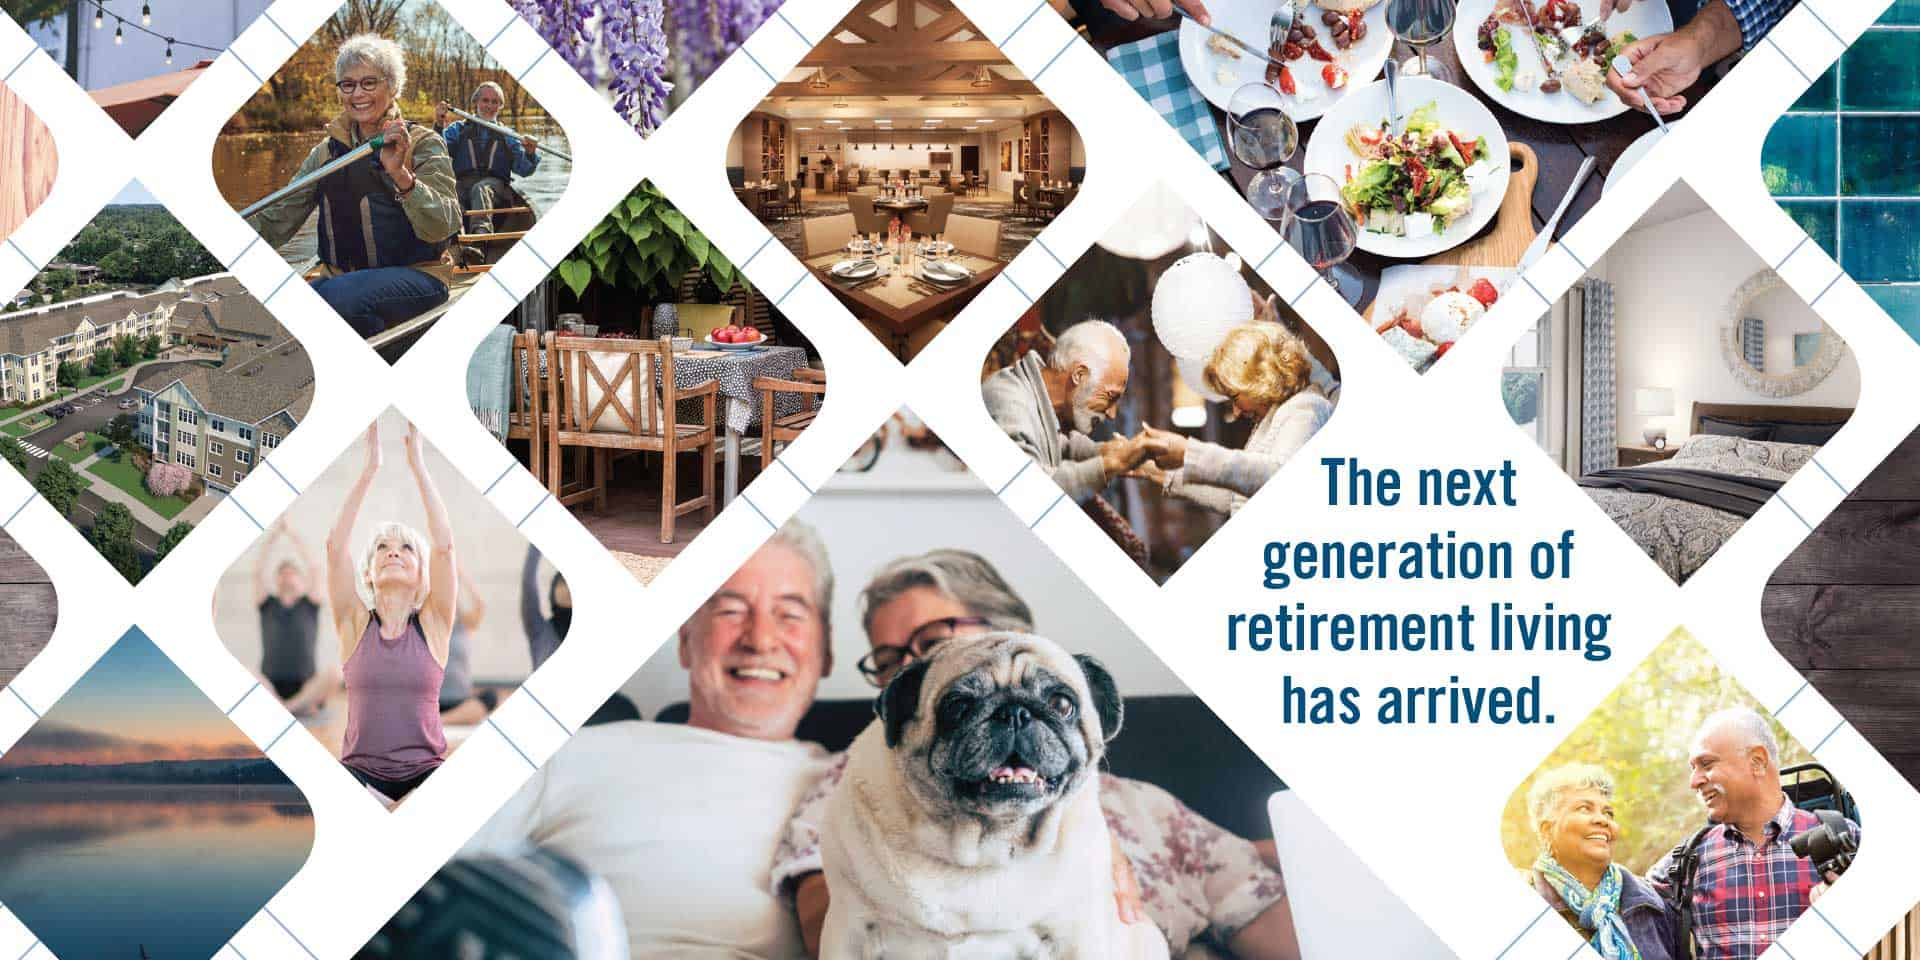 The next generation of retirement living has arrived.